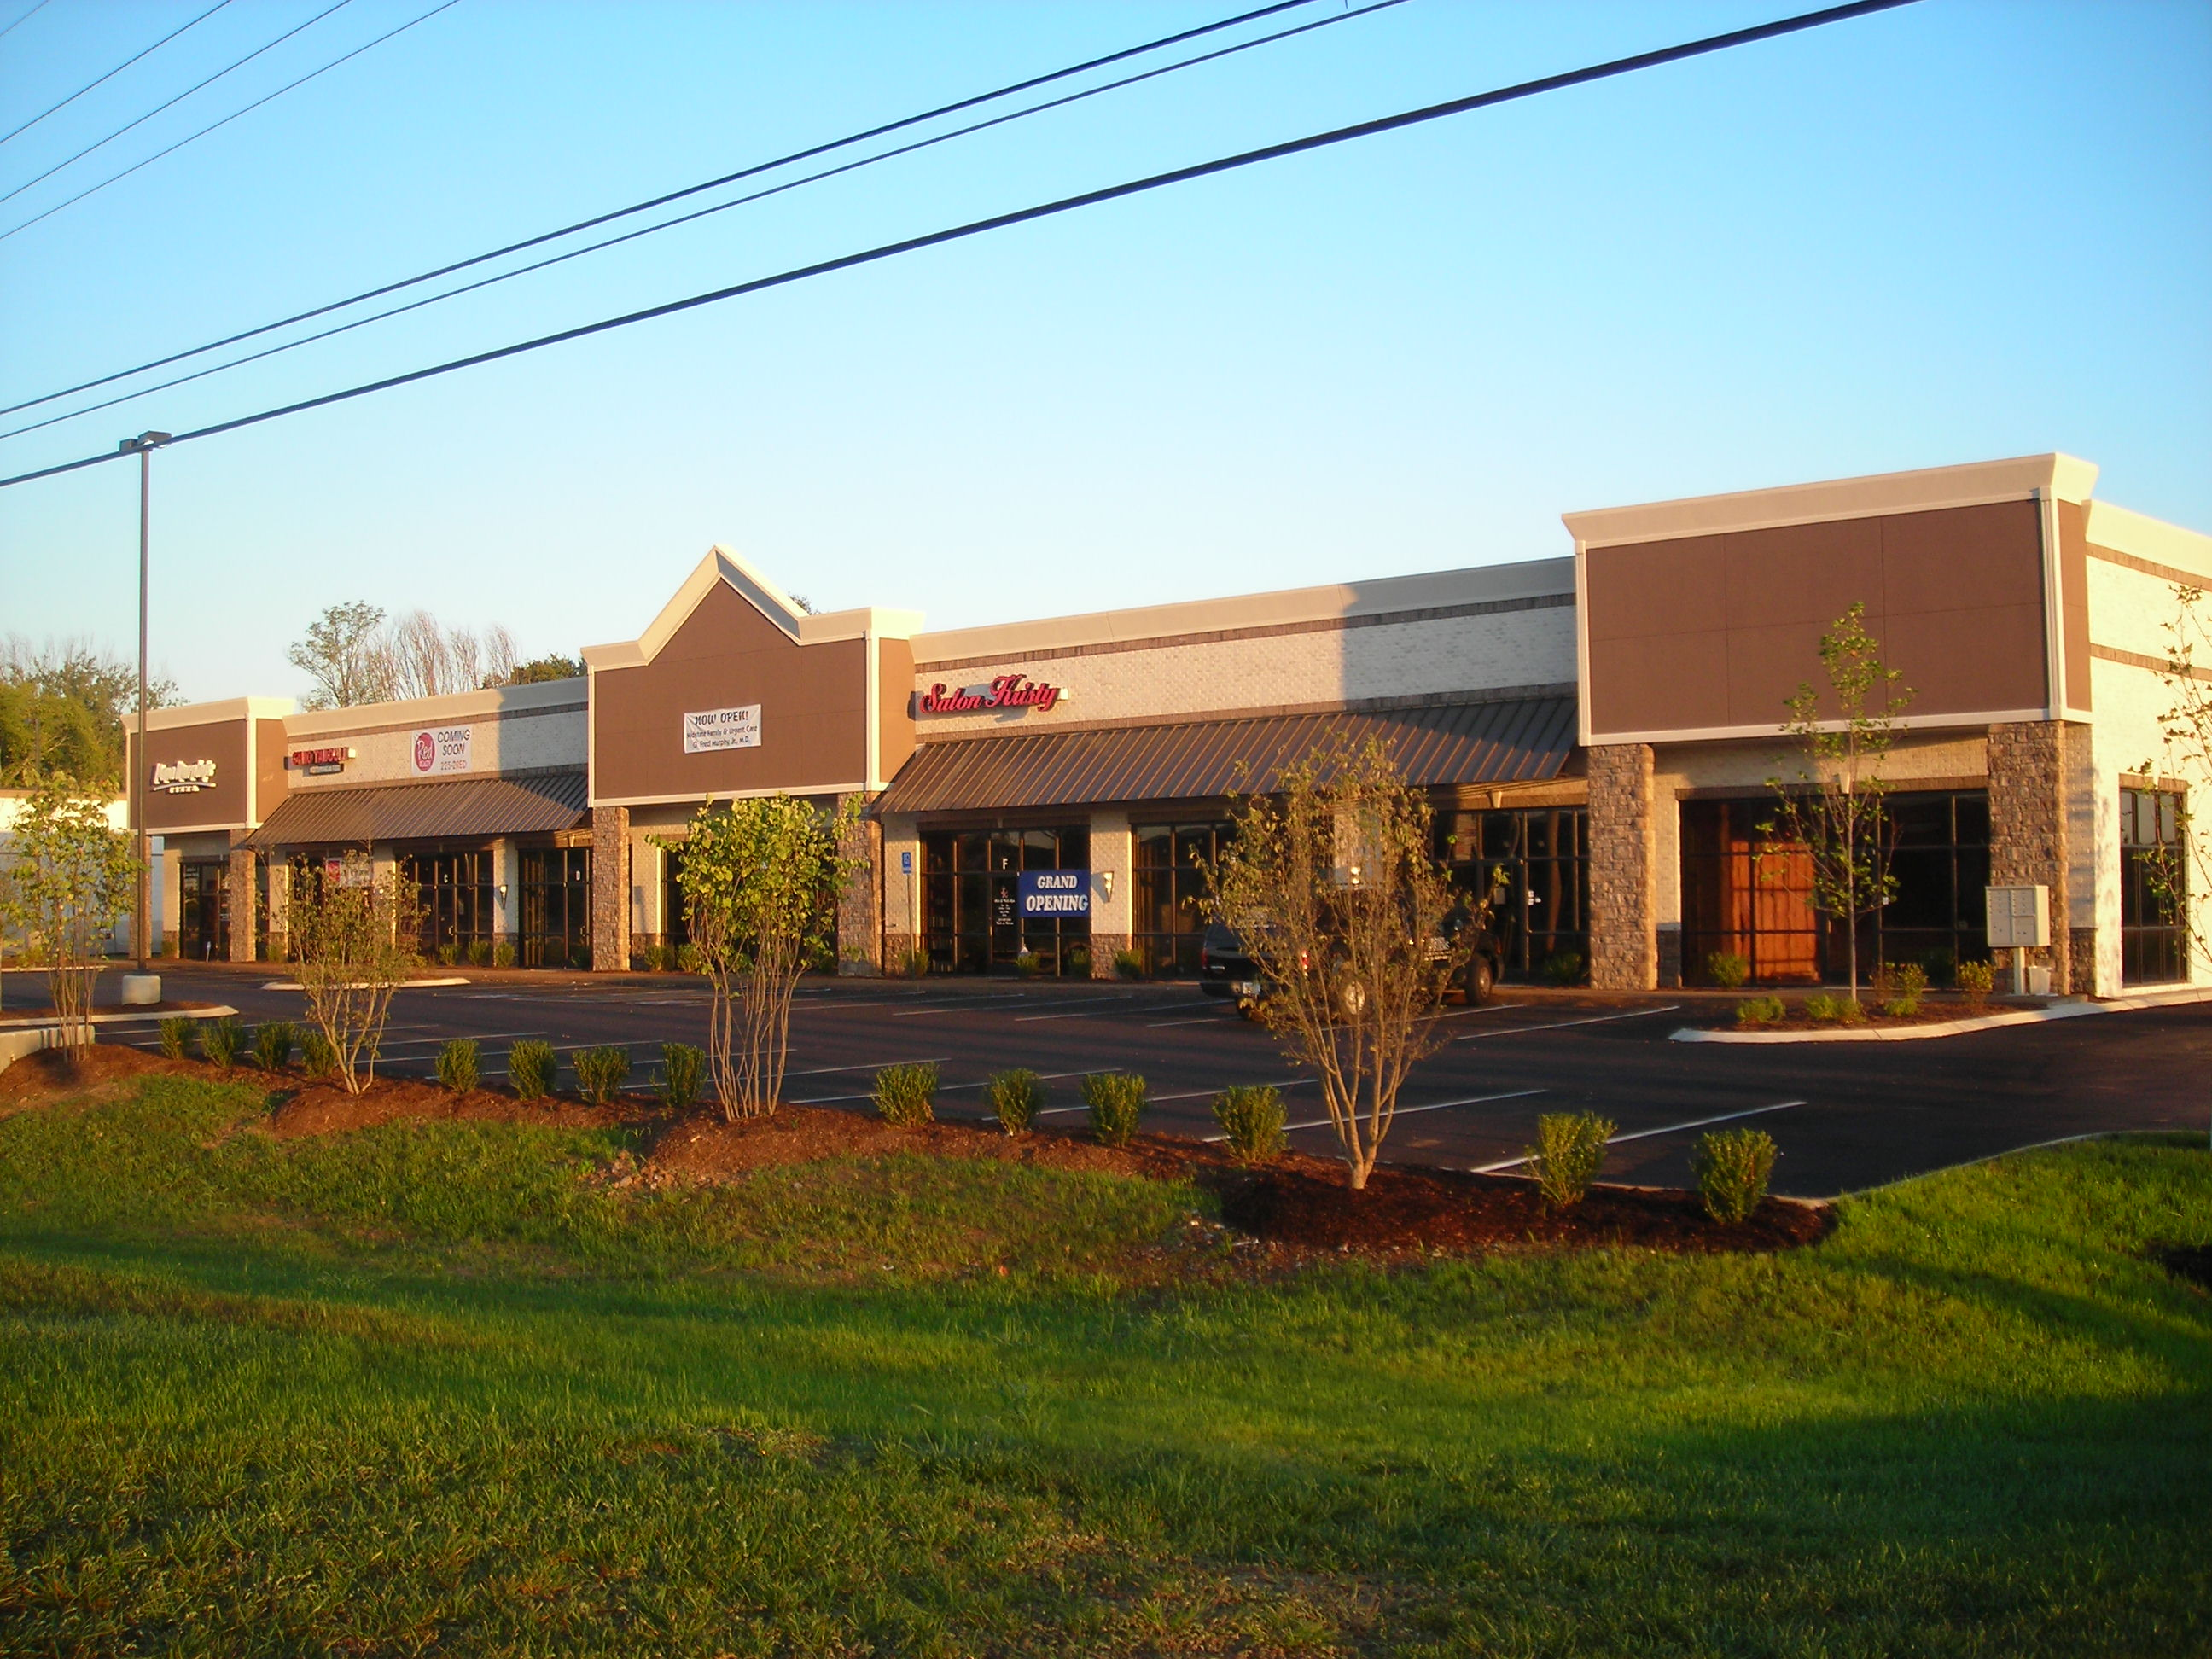 Property Investment Partners Llc Commercial Real